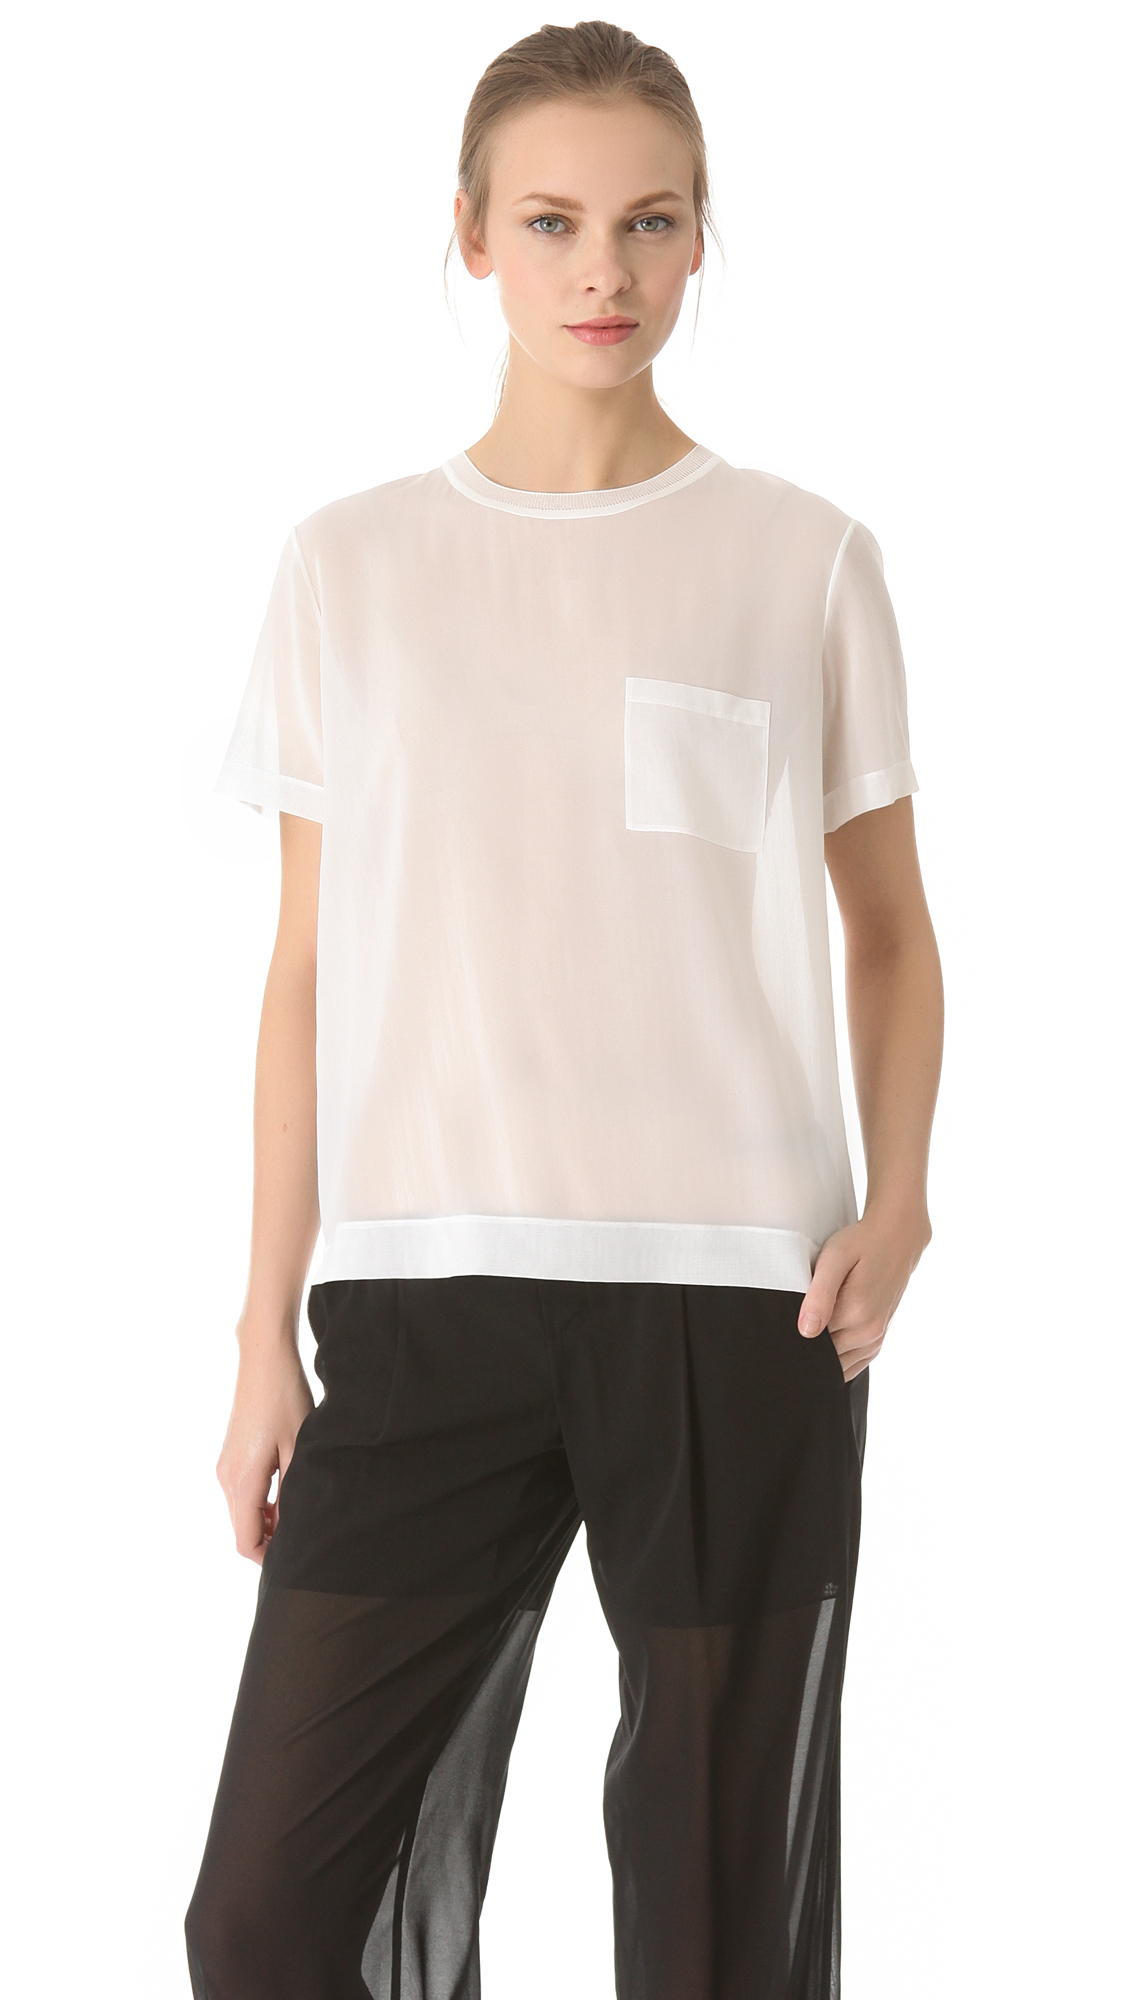 Vince sheer pocket tee in white lyst for Vince tee shirts sale